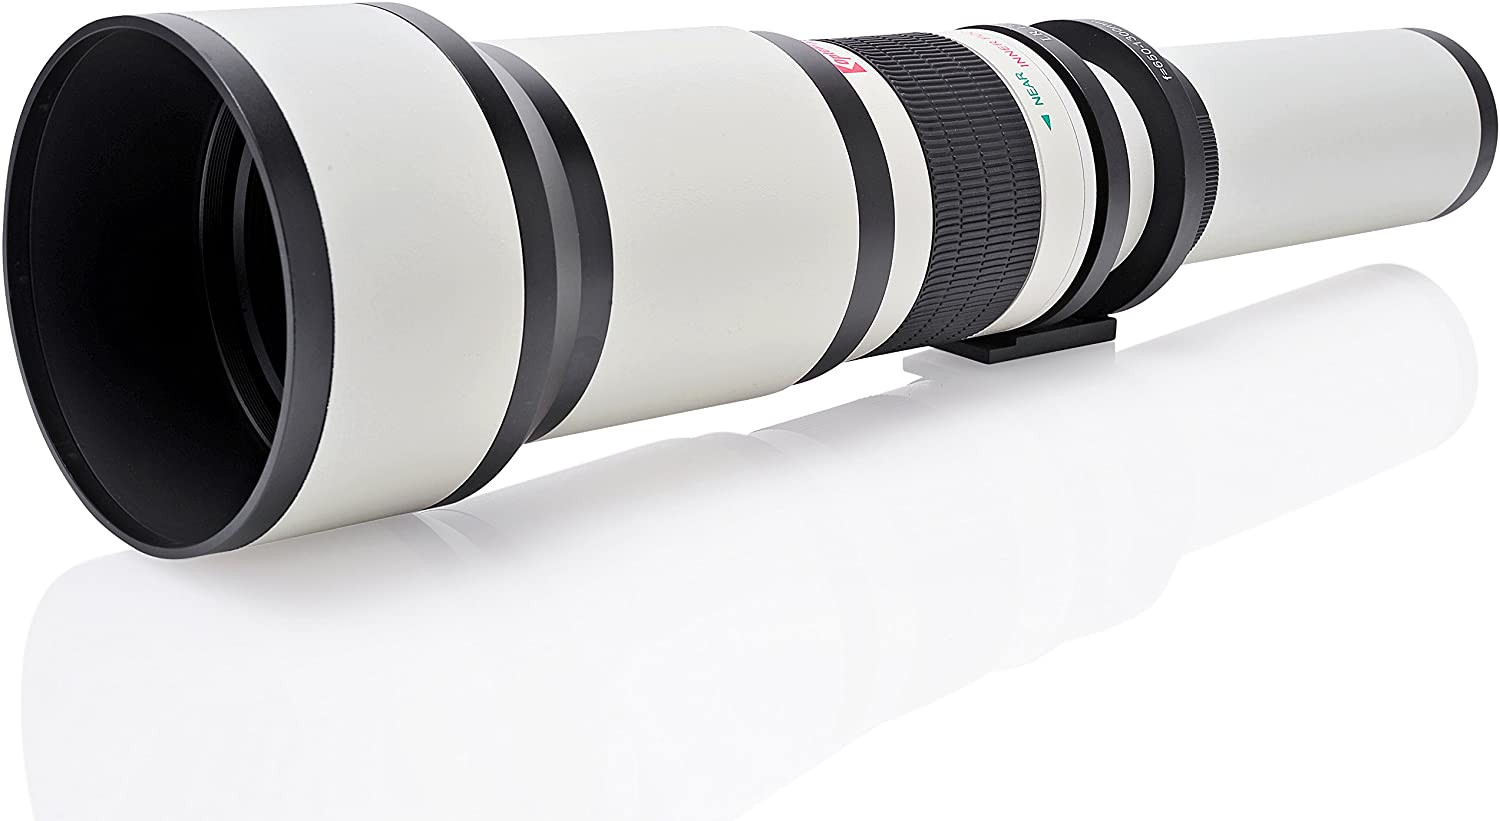 Opteka 650-1300mm Max 77% OFF Limited time cheap sale with 2X- 1300-2600mm for Zoom Lens Telephoto